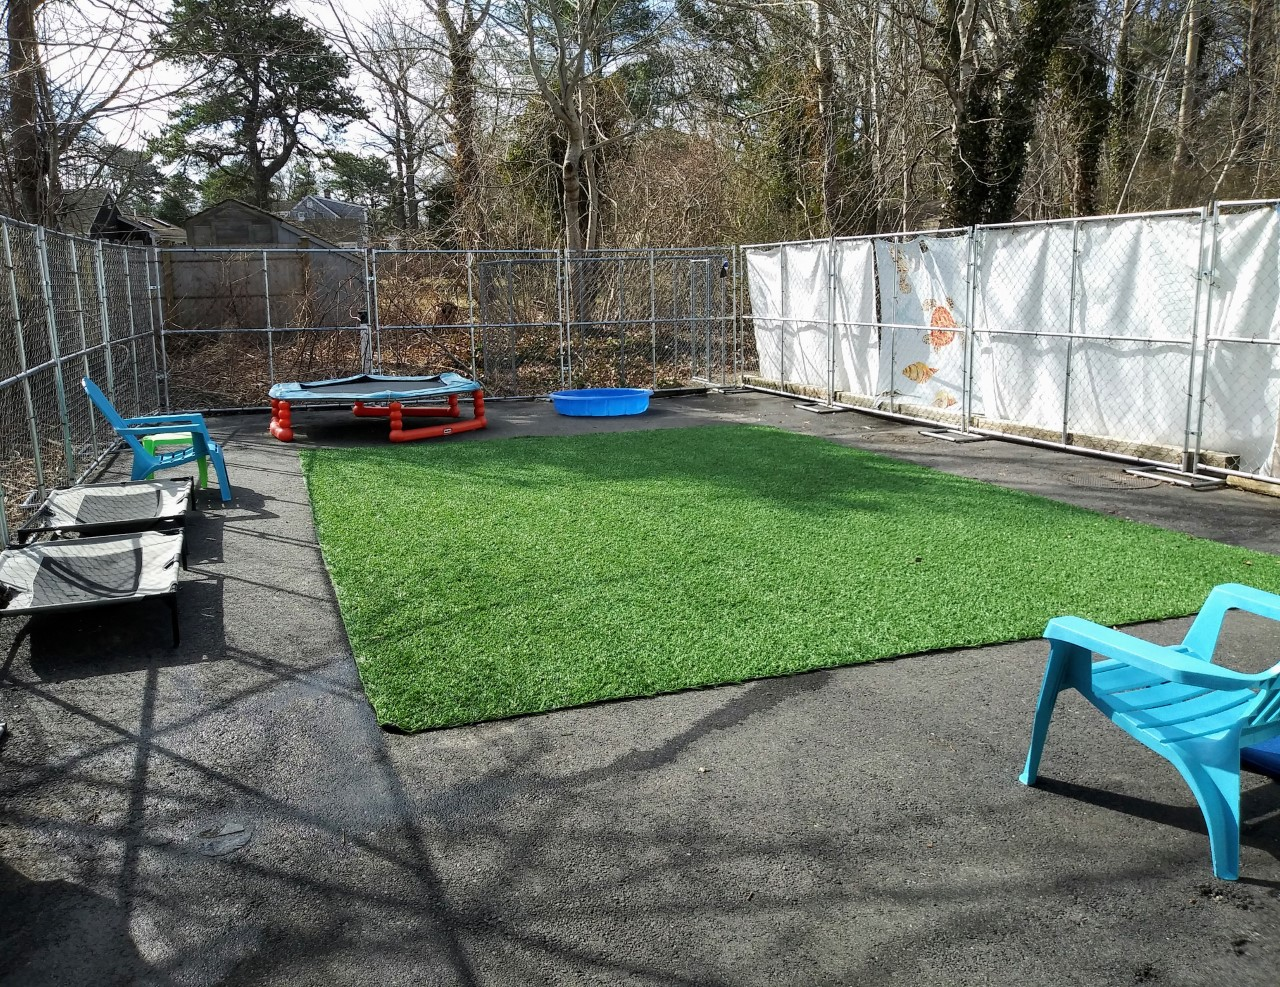 Doggy Daycare and Boarding Outdoor playground contains artificial turf wading pool chairs cots and trampoline